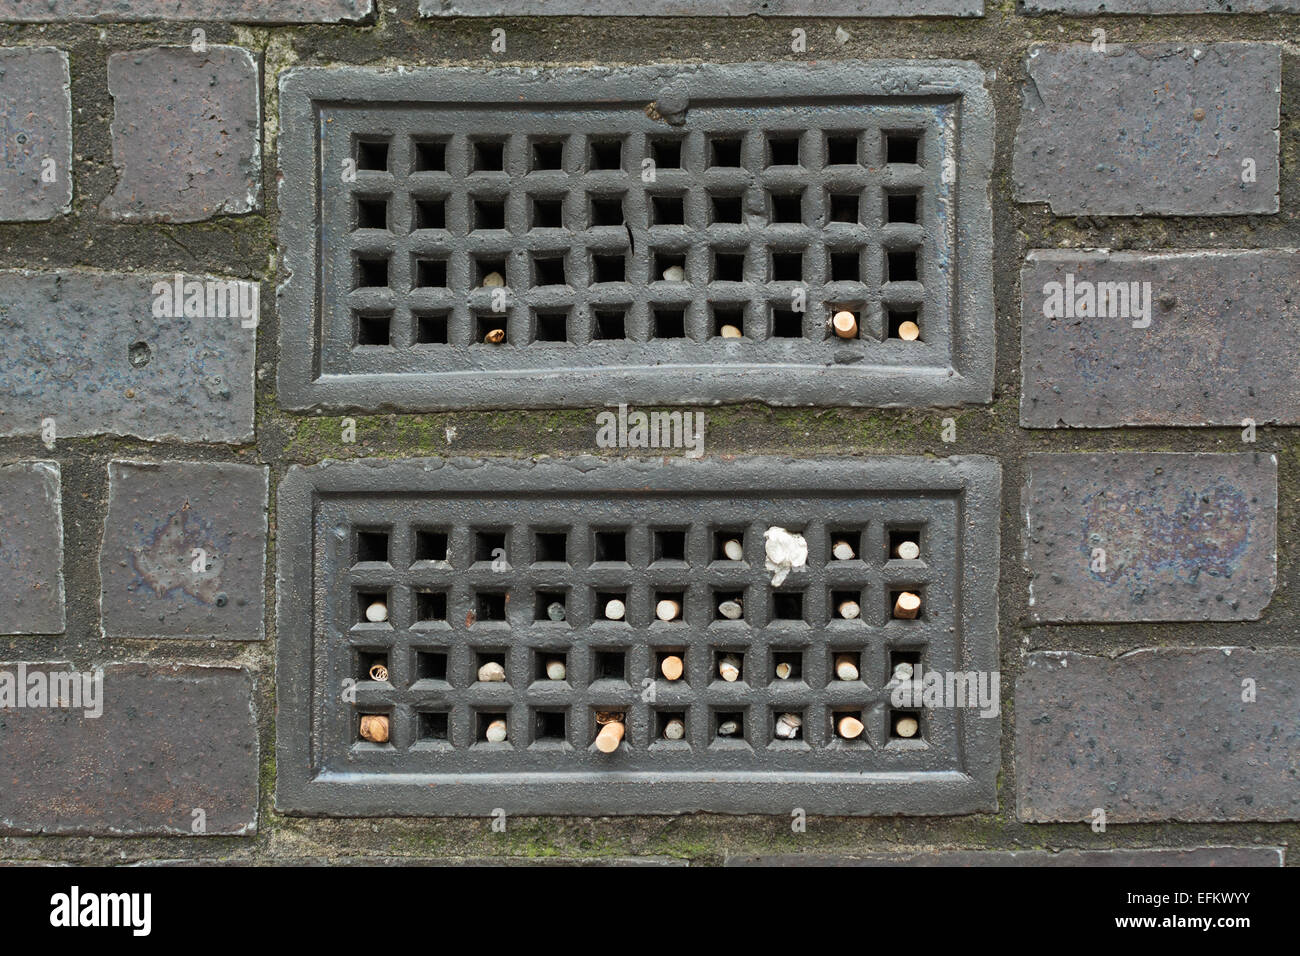 Cendrier Exterieur Belgique Used Cigarette Butts Photos And Used Cigarette Butts Images